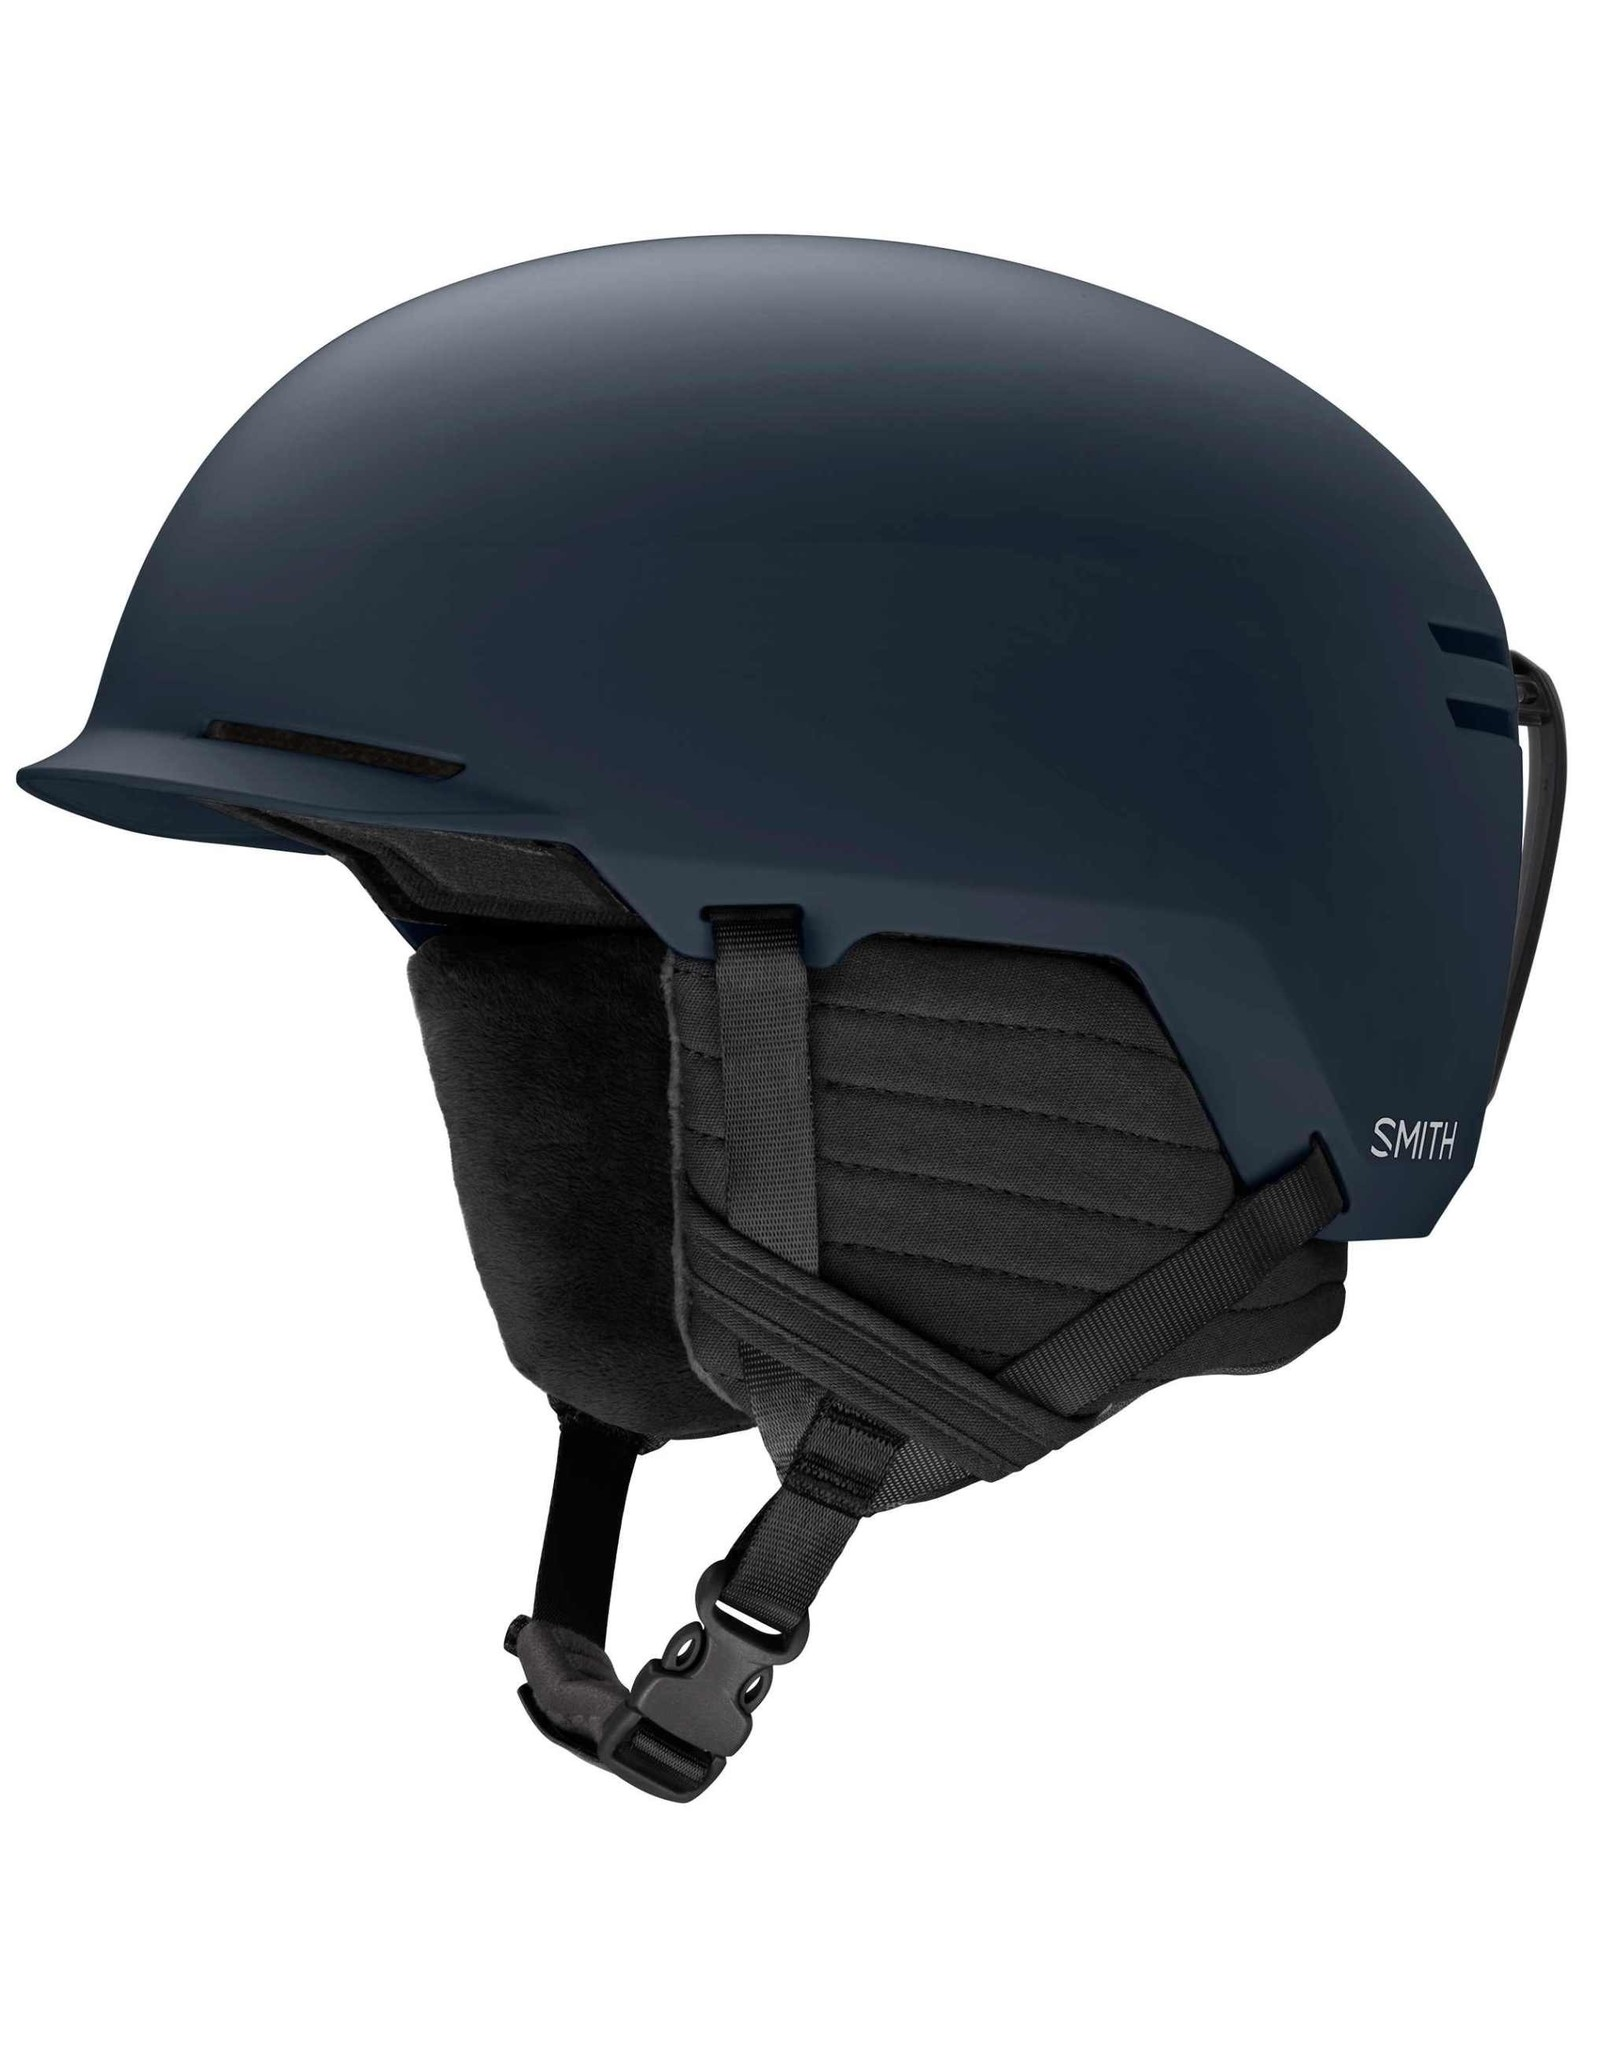 Smith SMITH SCOUT MATTE CLOUDGREY 20 CASQUE PROTECTEUR